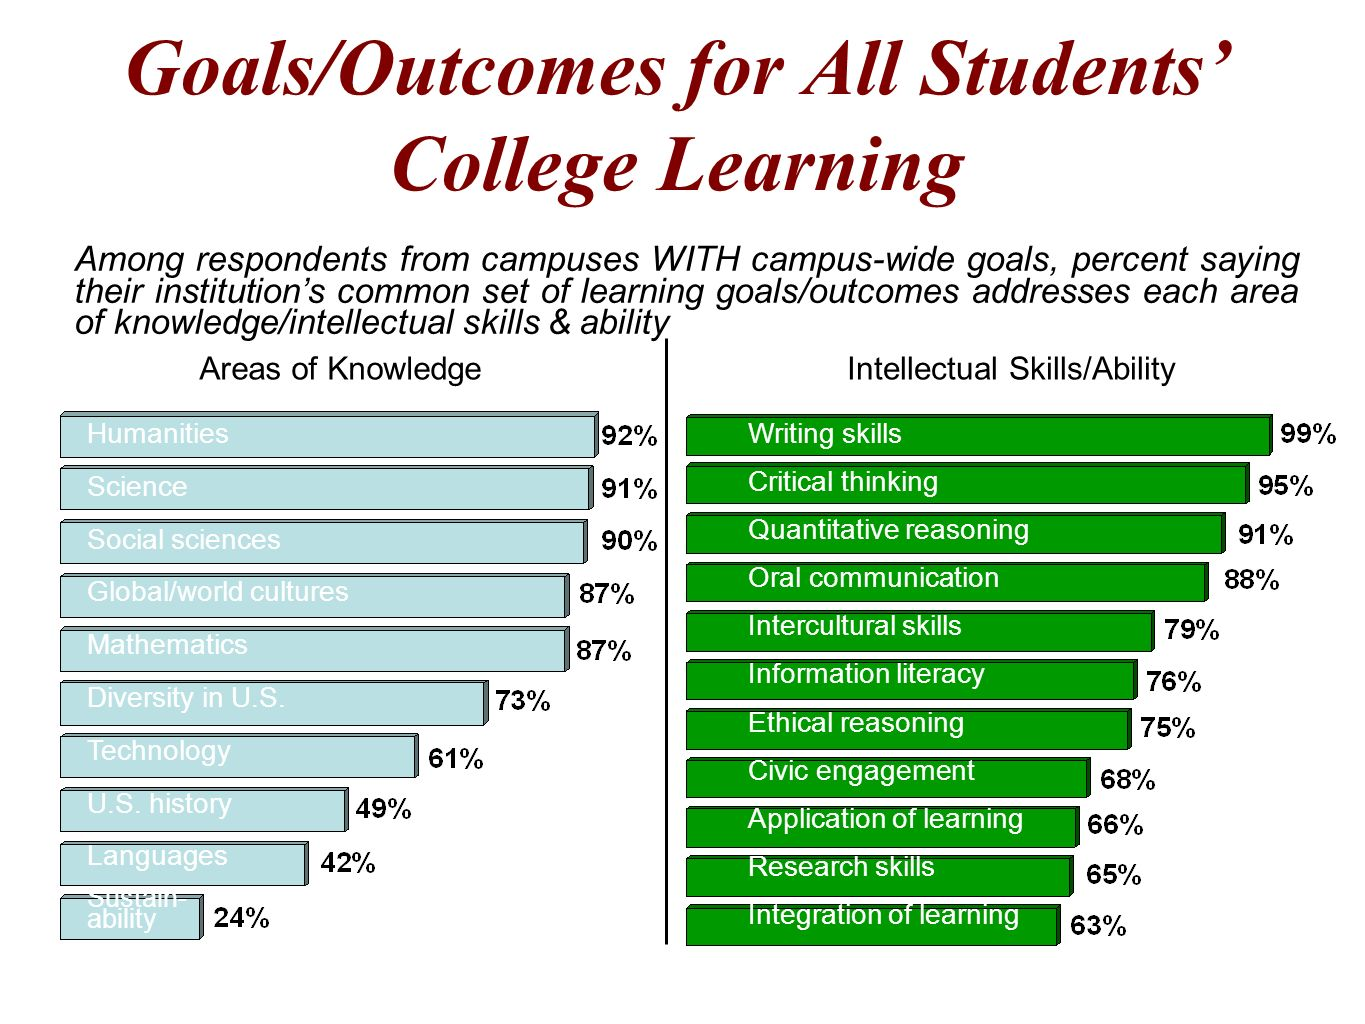 35 Goals/Outcomes for All Students College Learning Humanities Science Social sciences Global/world cultures Mathematics Diversity in U.S. Technology